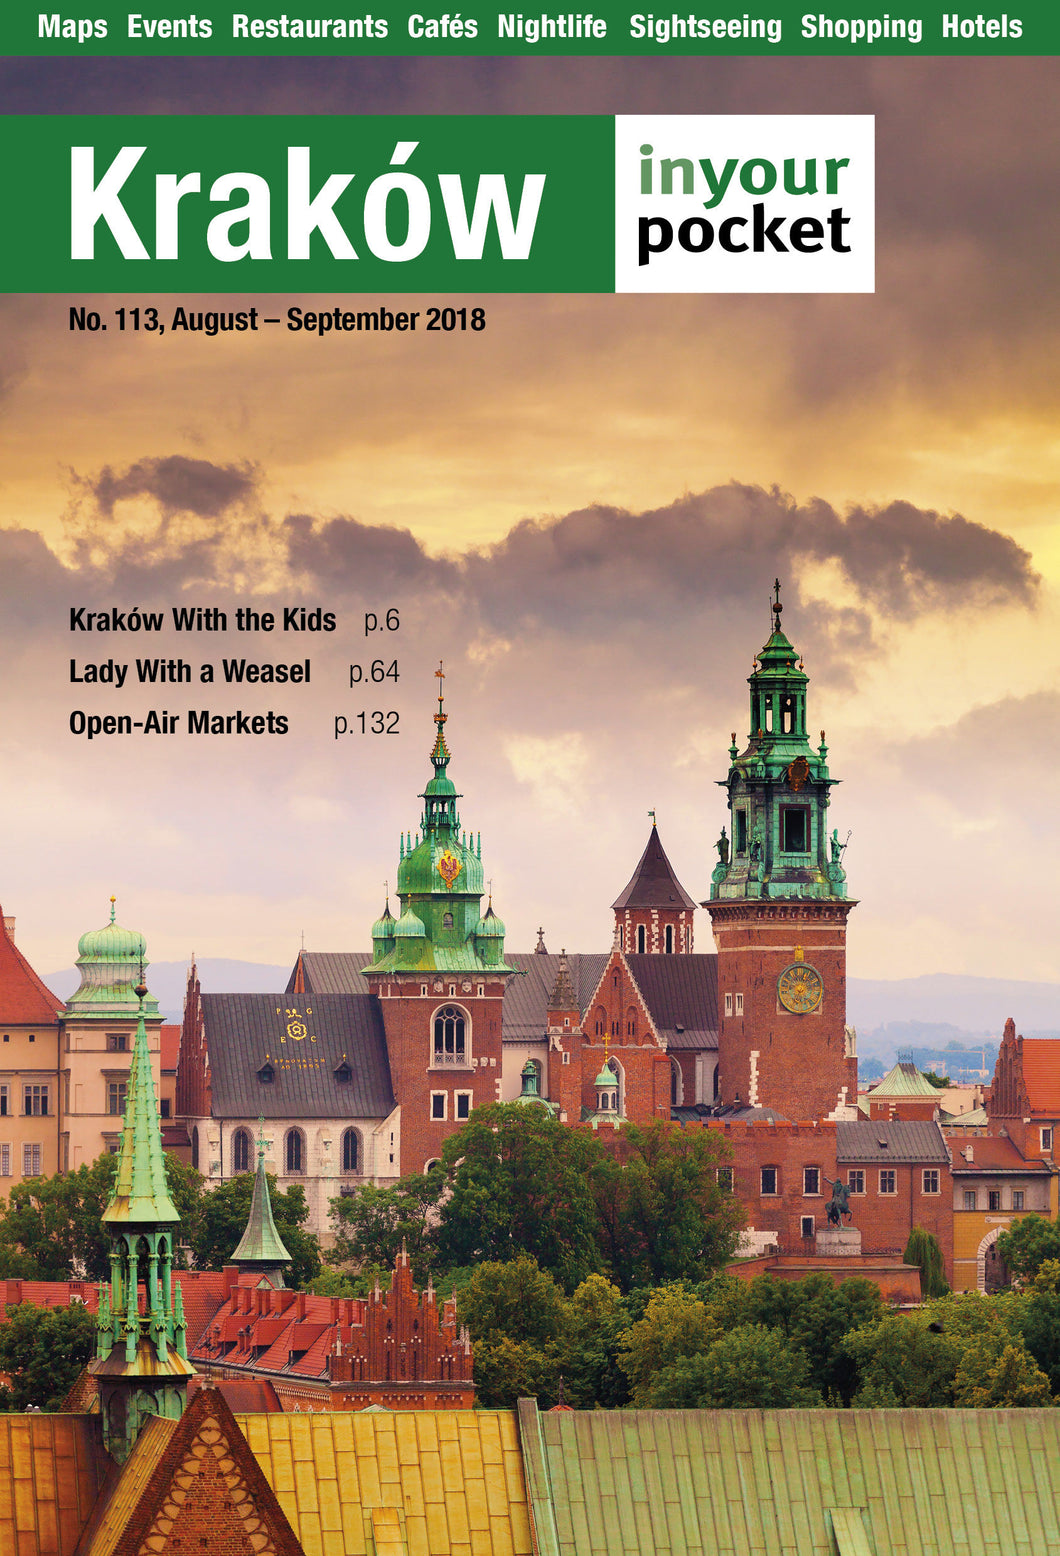 Krakow In Your Pocket Printed Full Guide